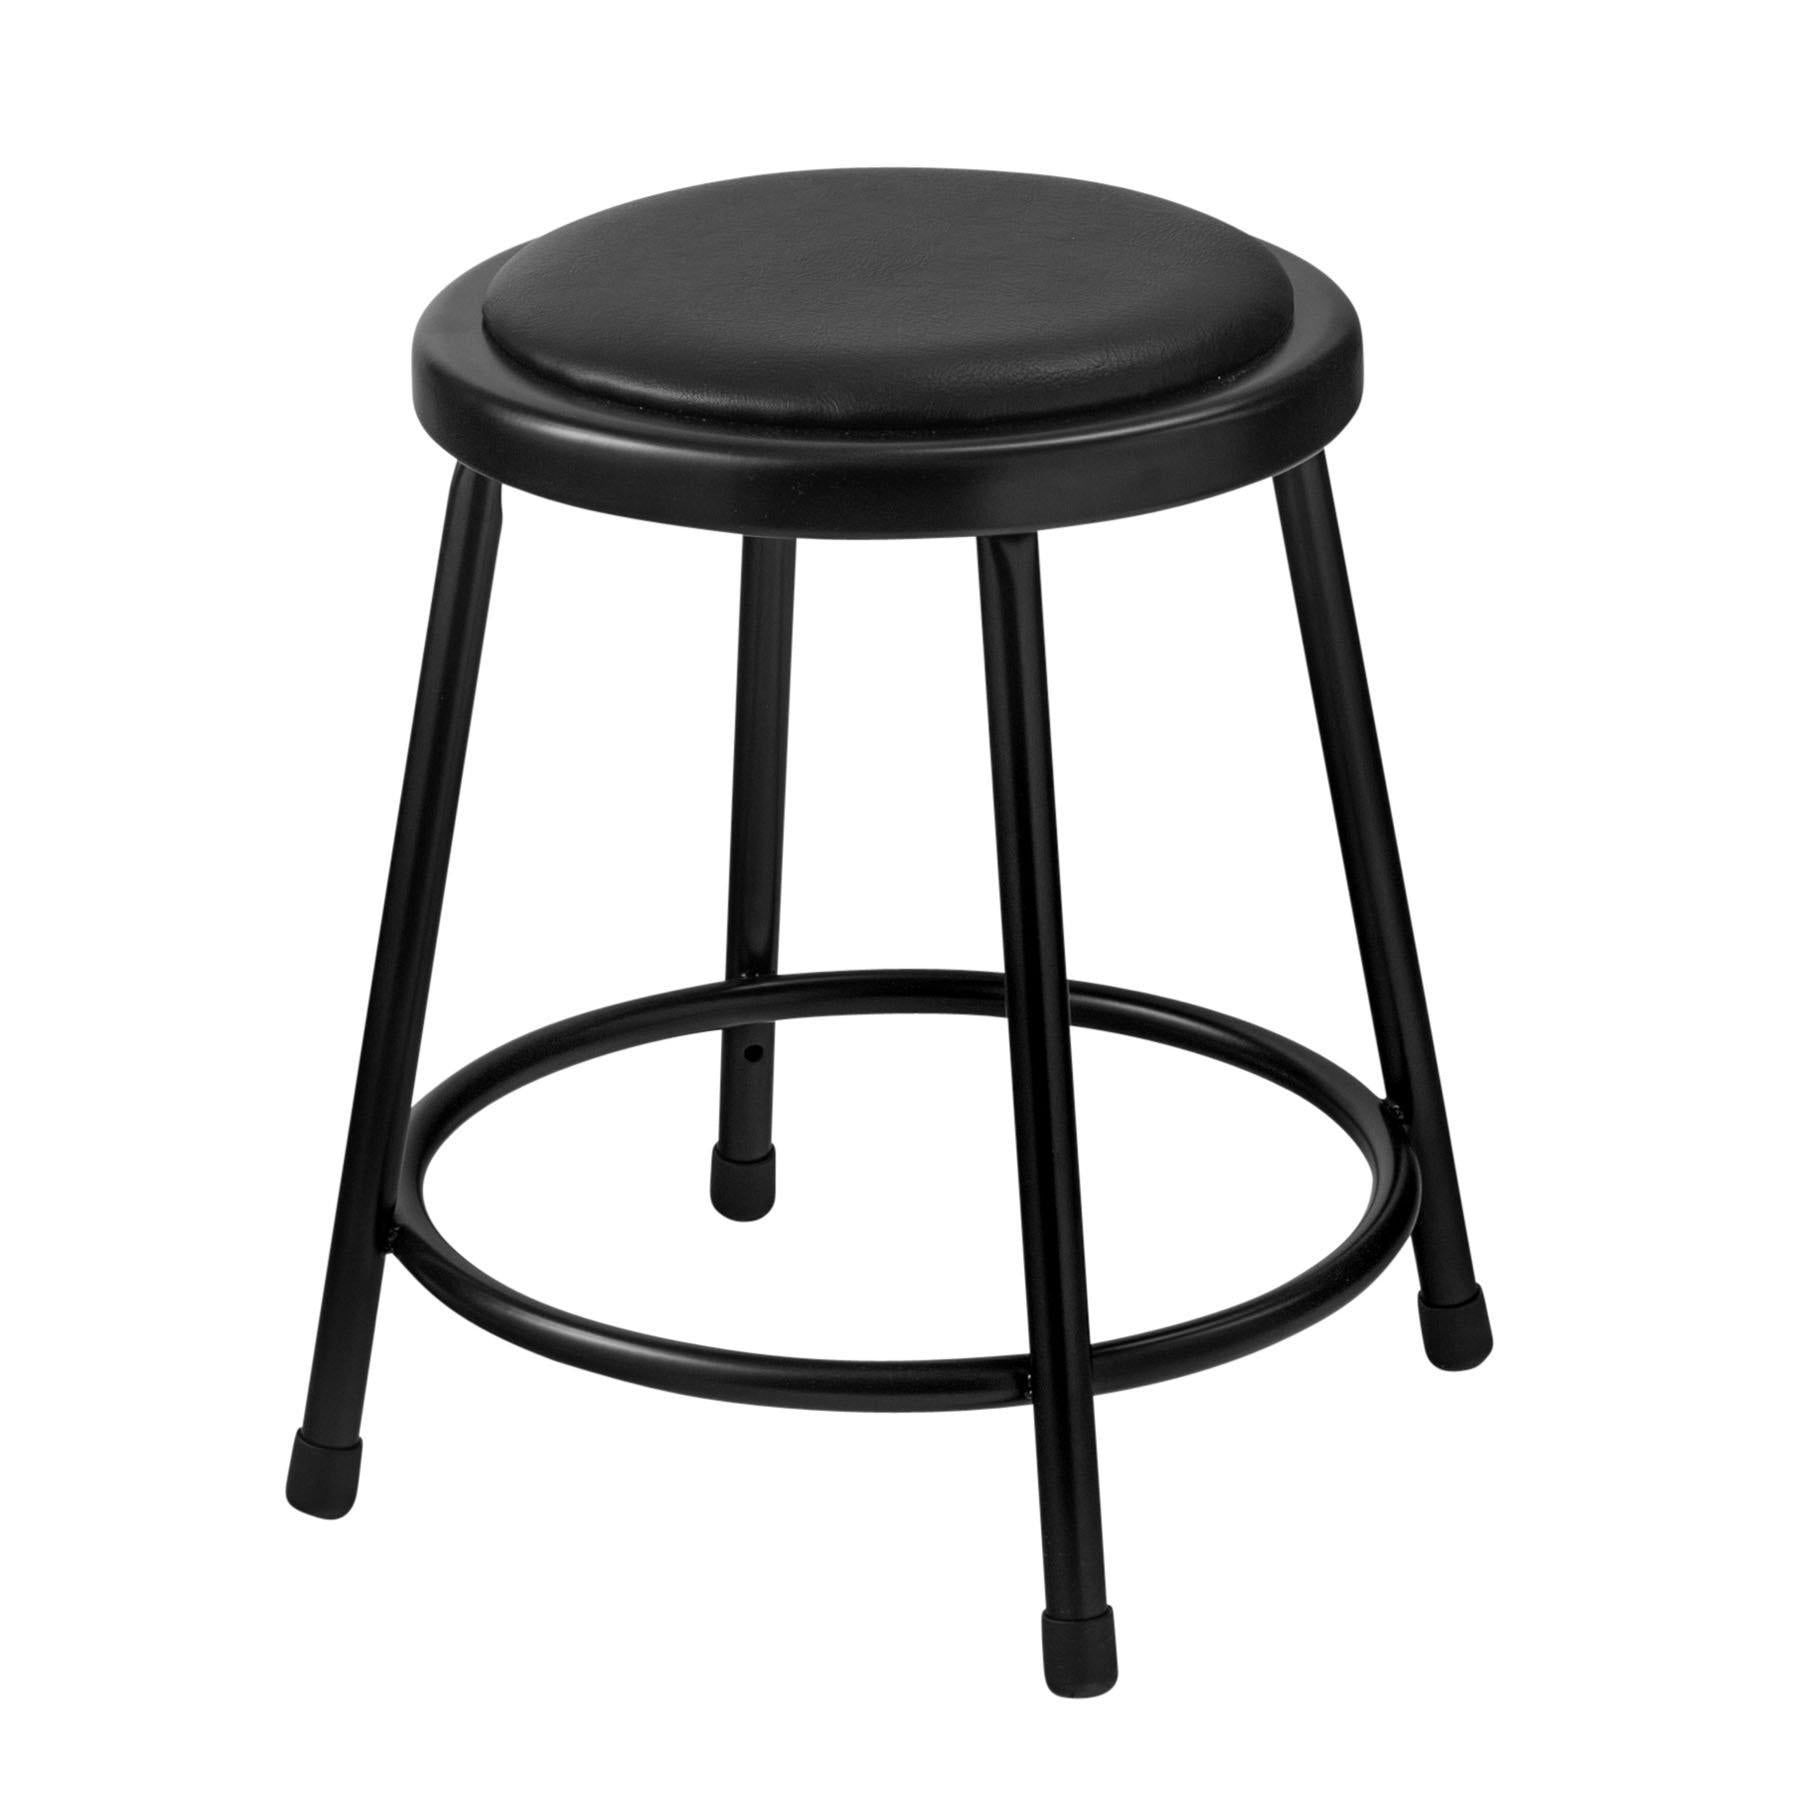 "Heavy Duty Vinyl Padded Steel Stool, Black-Stools-18""-"